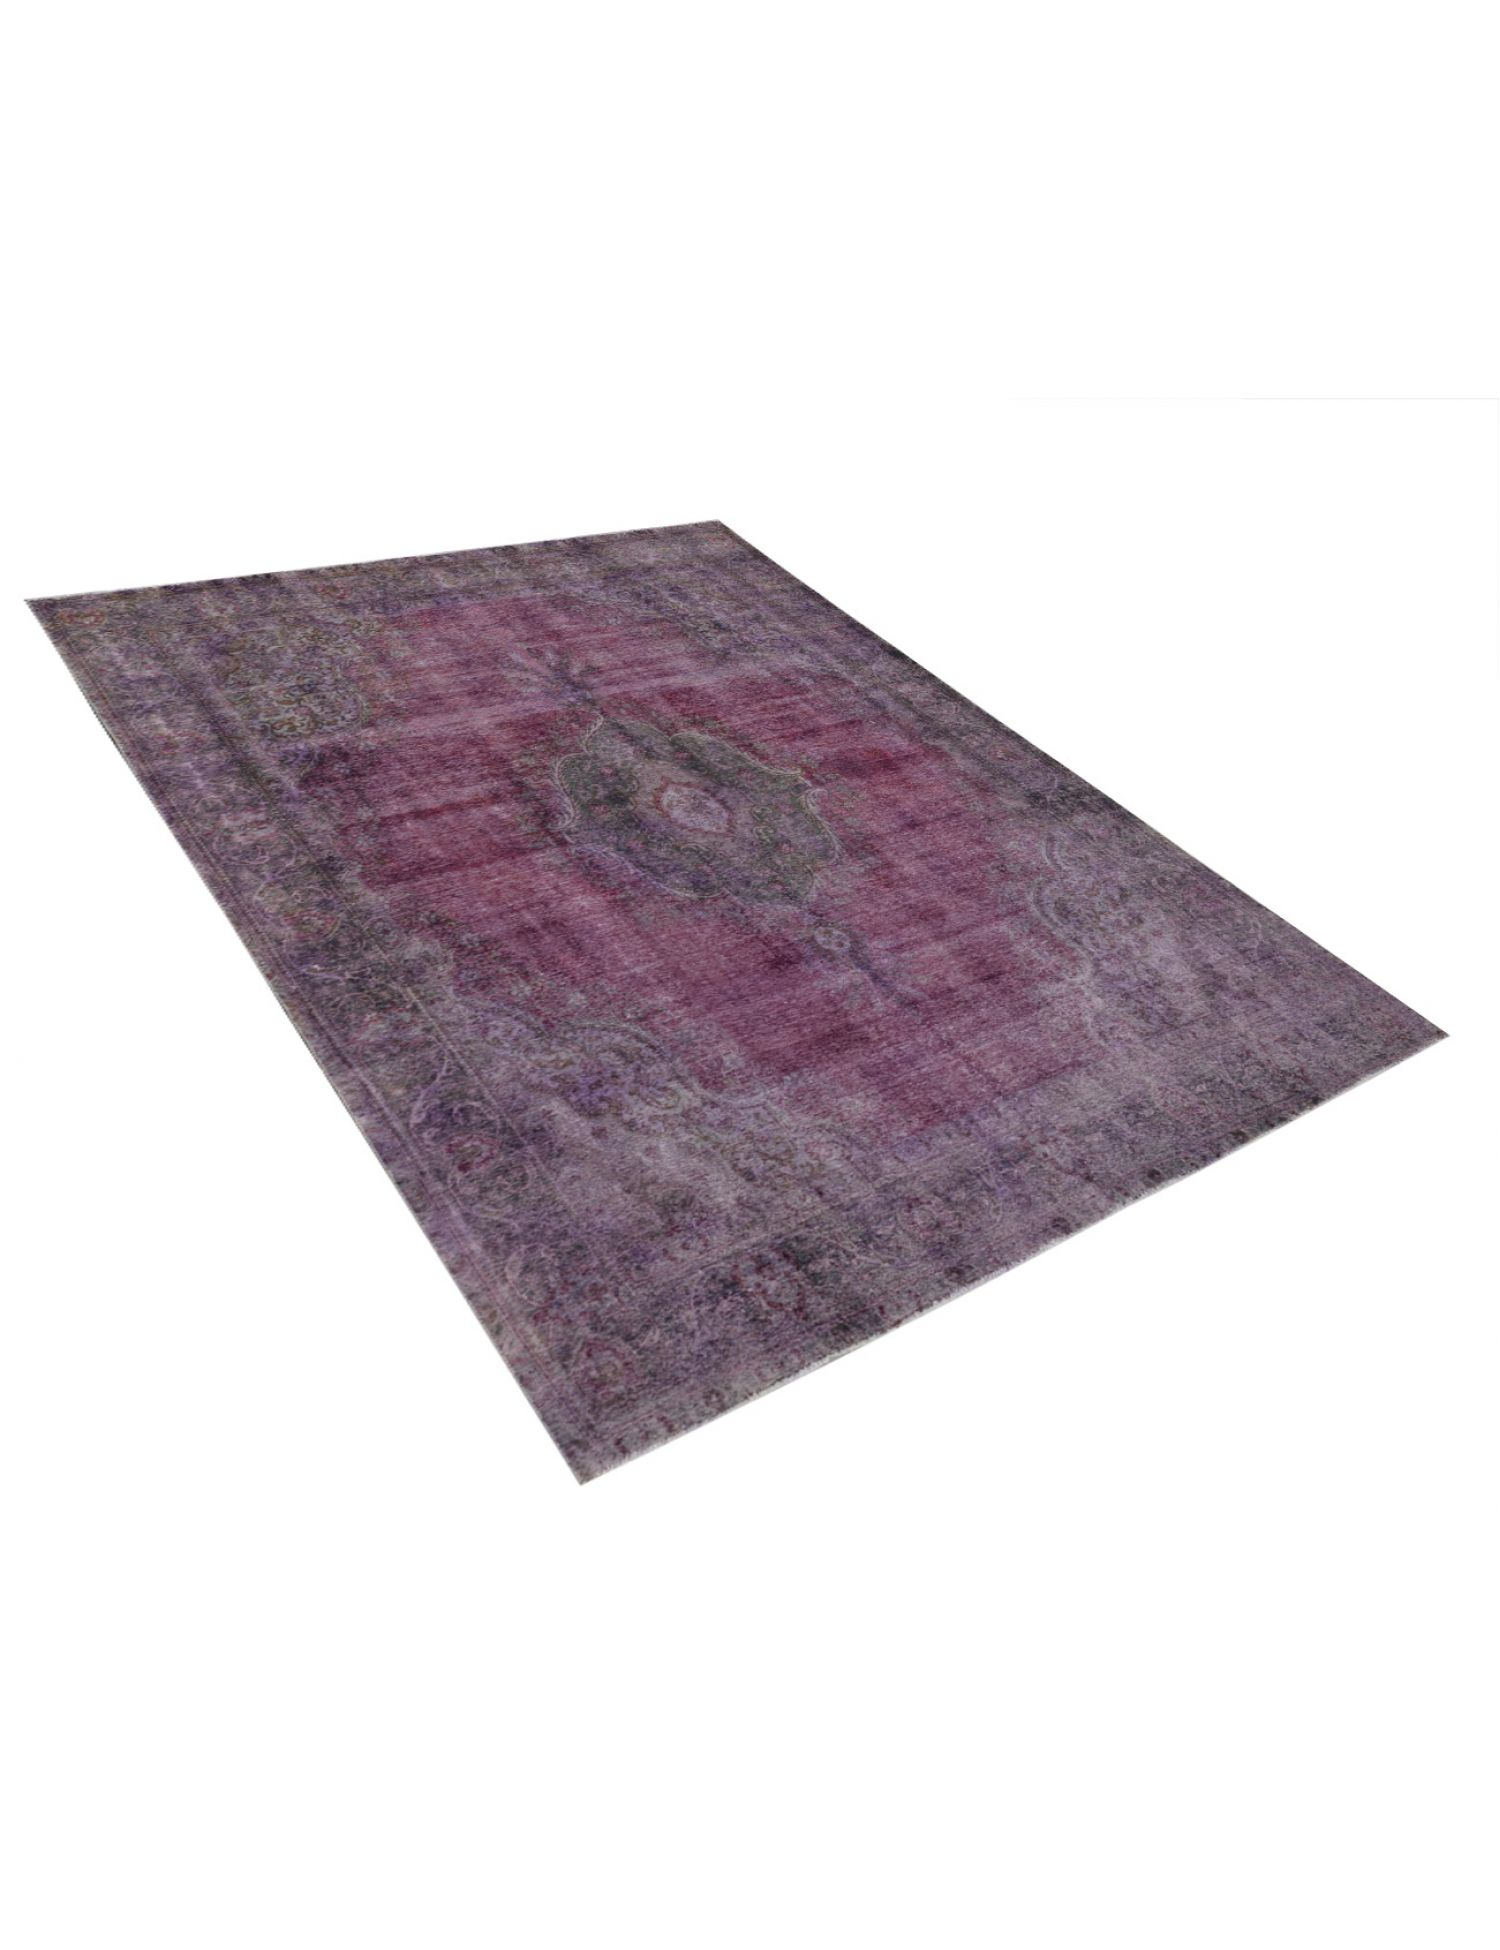 Vintage Carpet  purple <br/>377 x 284 cm